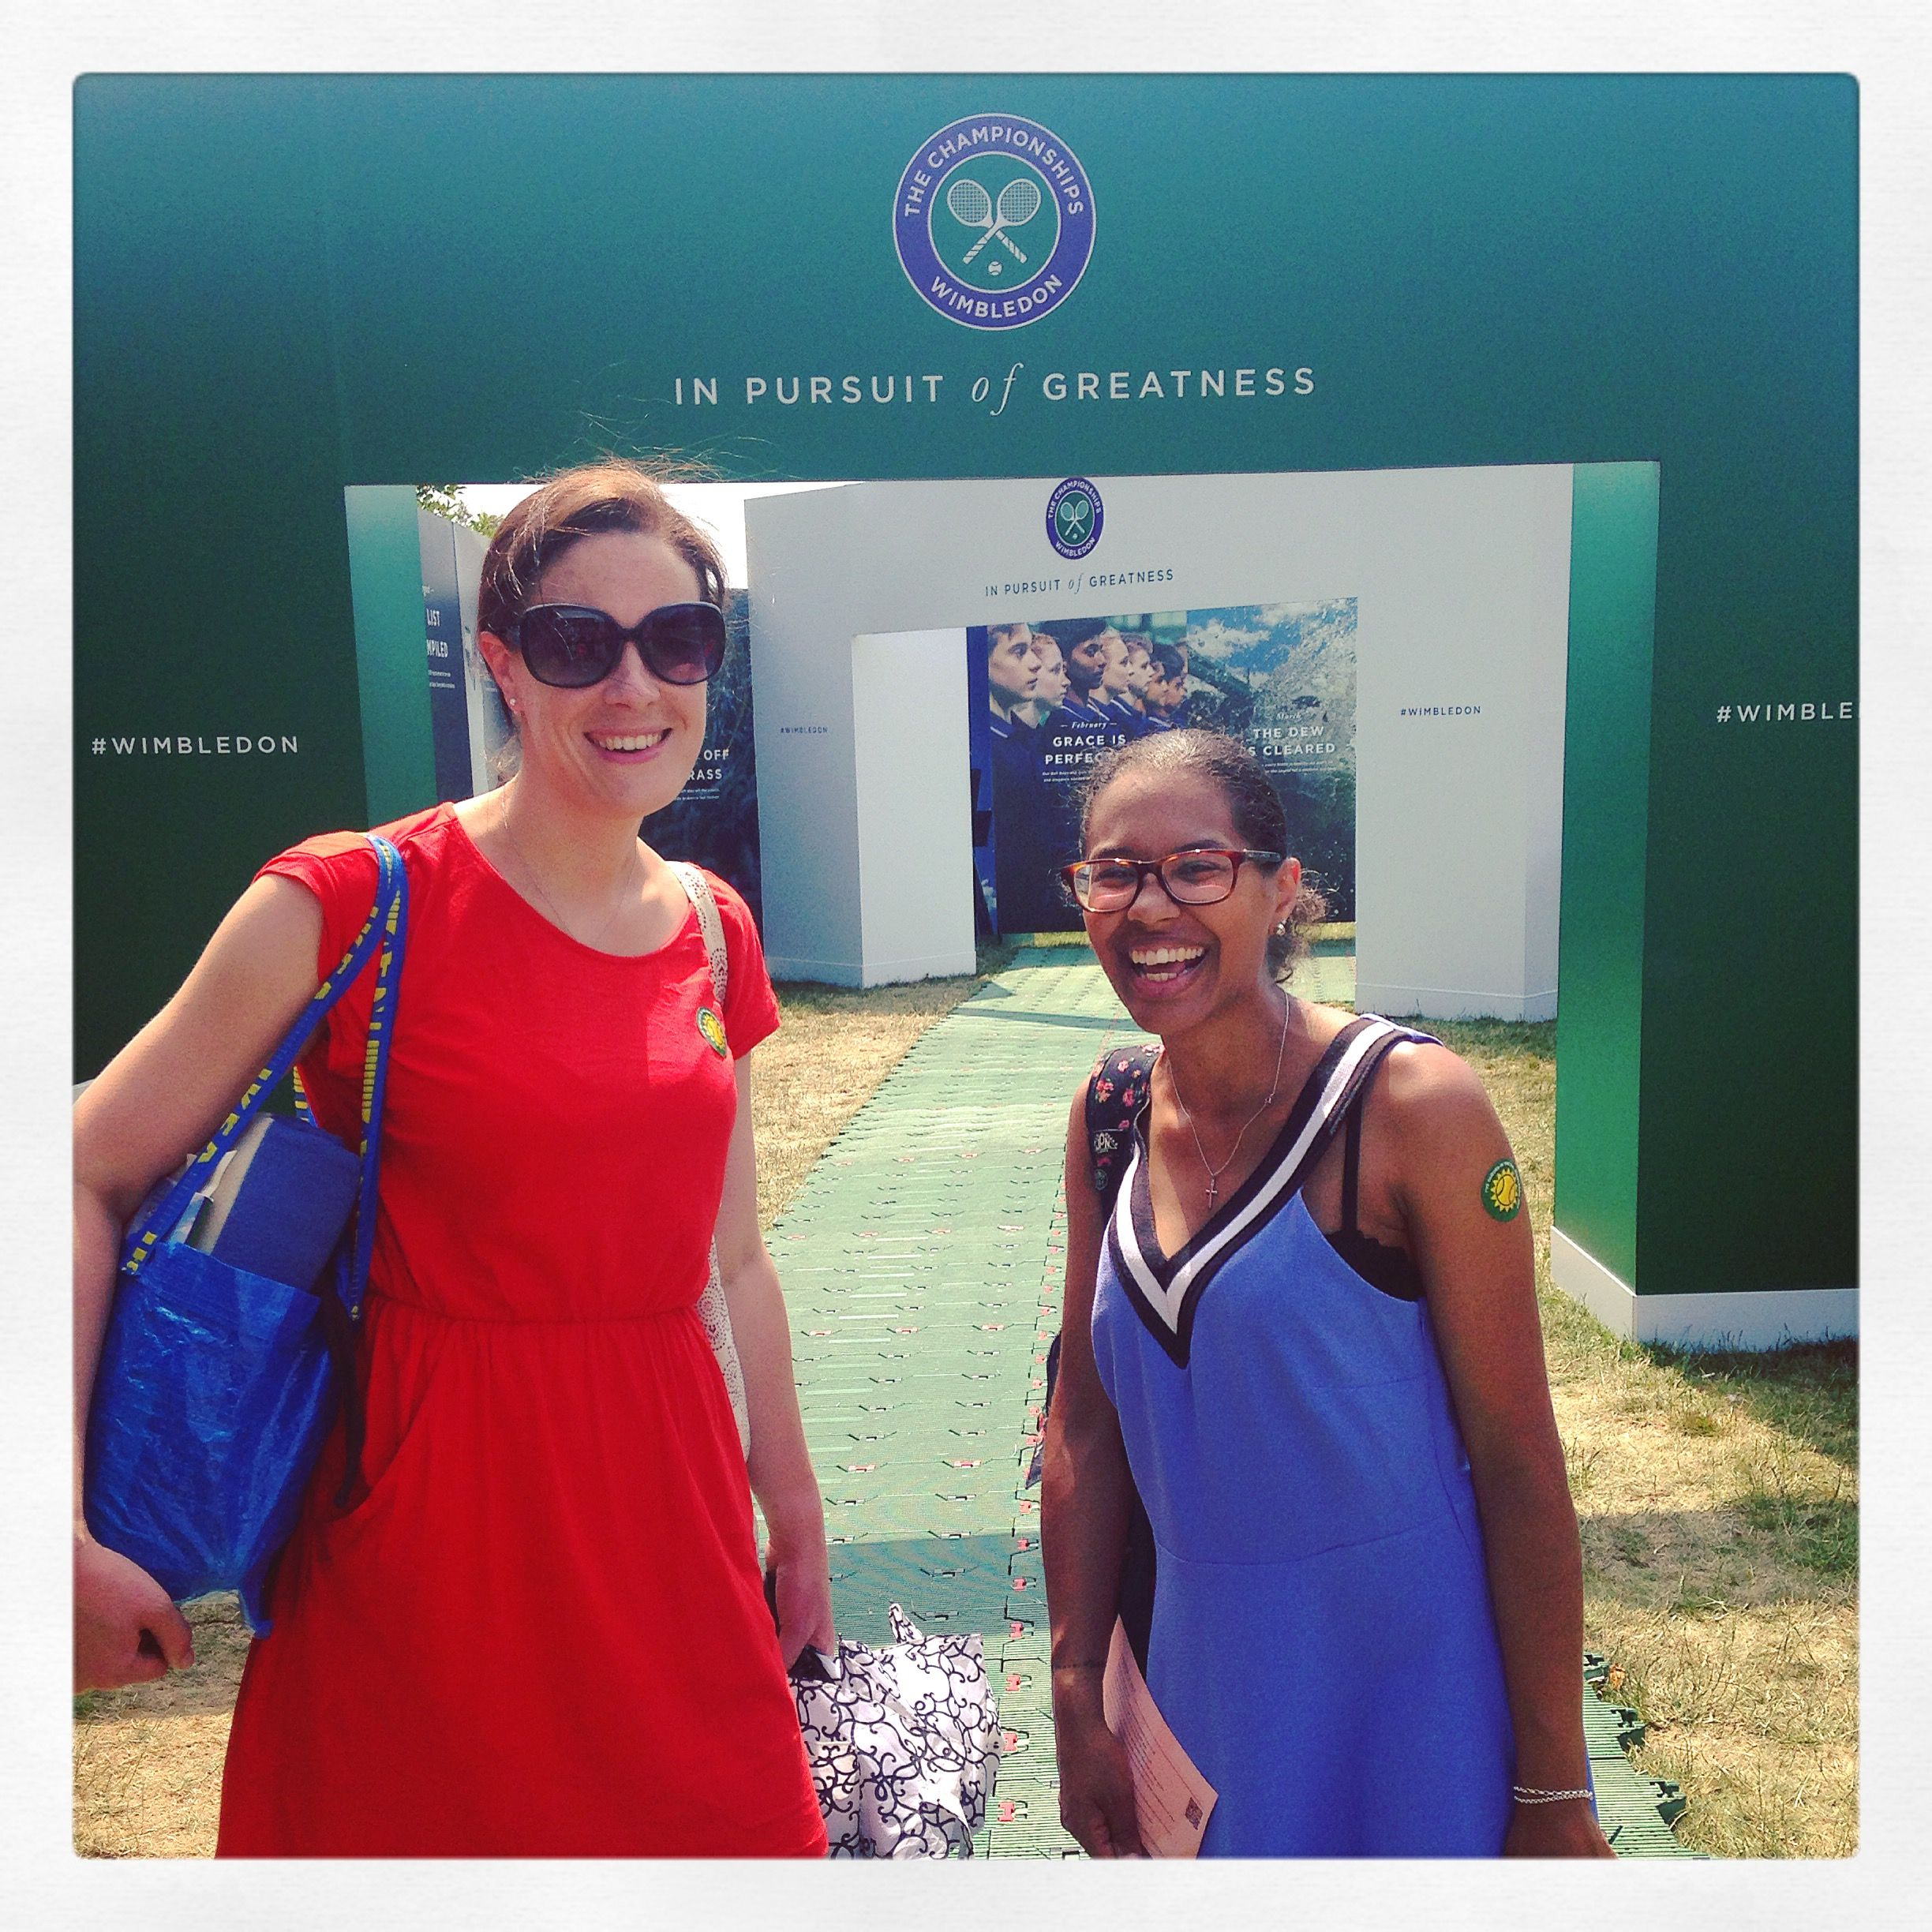 An ace day out at Wimbledon with my BBC bestie 🎾🍓🎾🍓